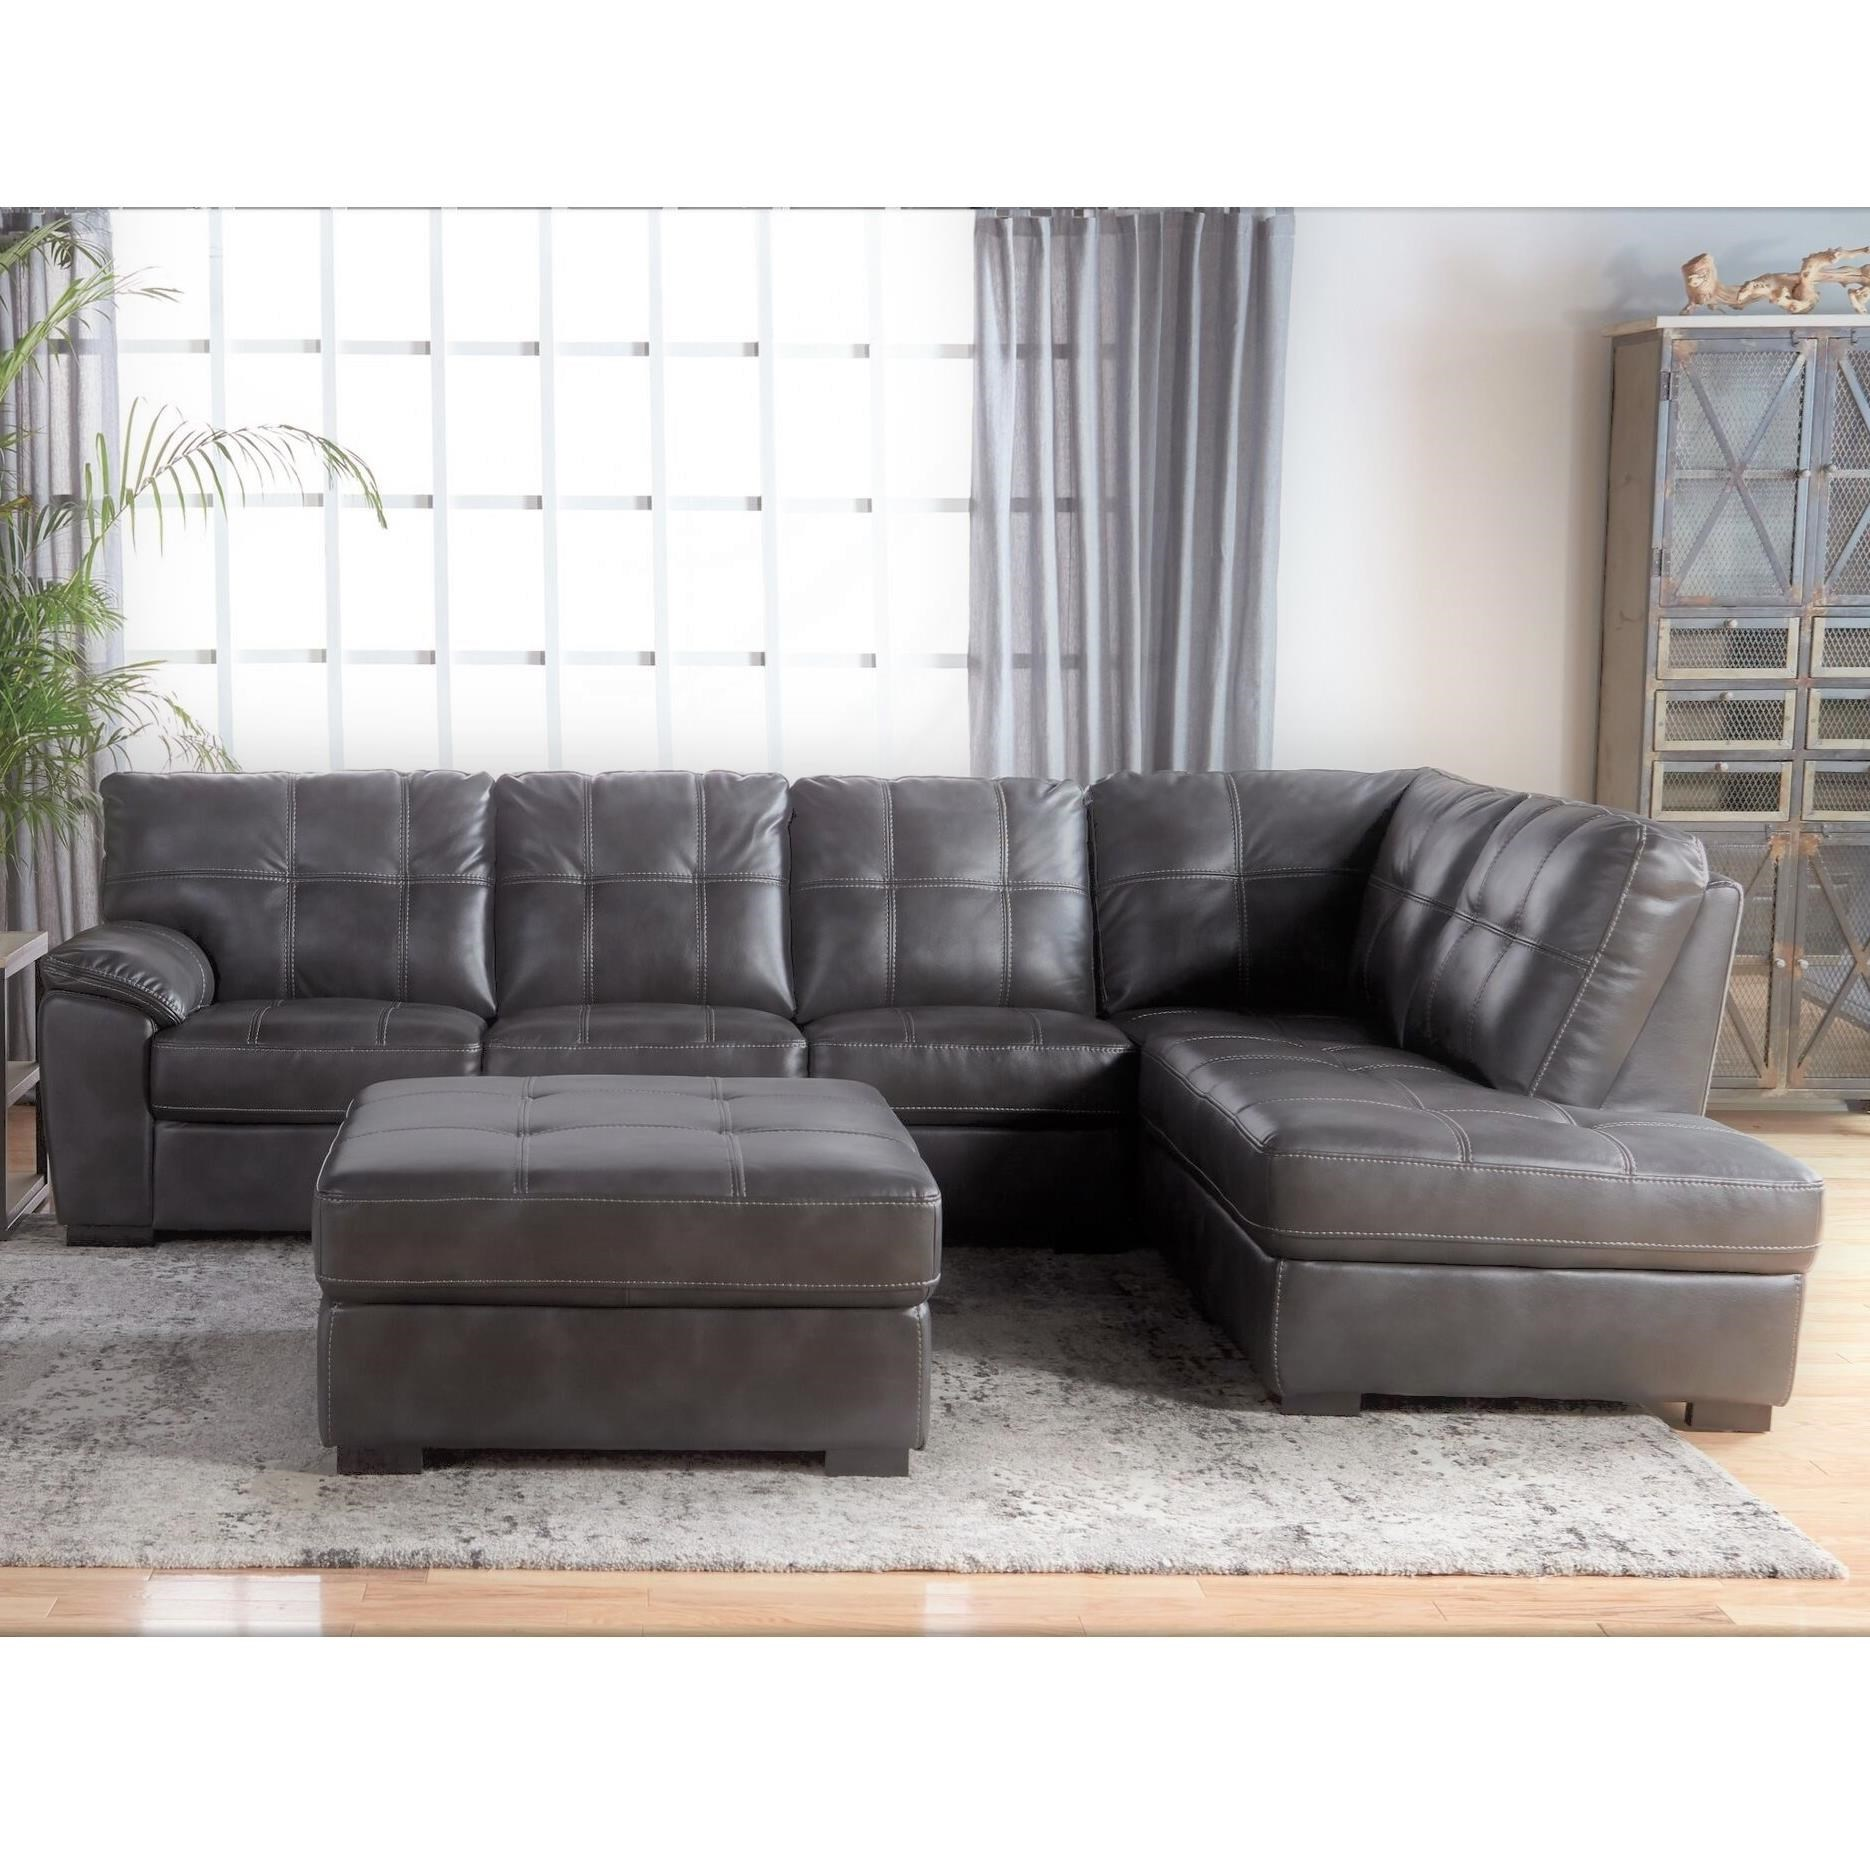 Tufted Sectional with Bumper Chaise